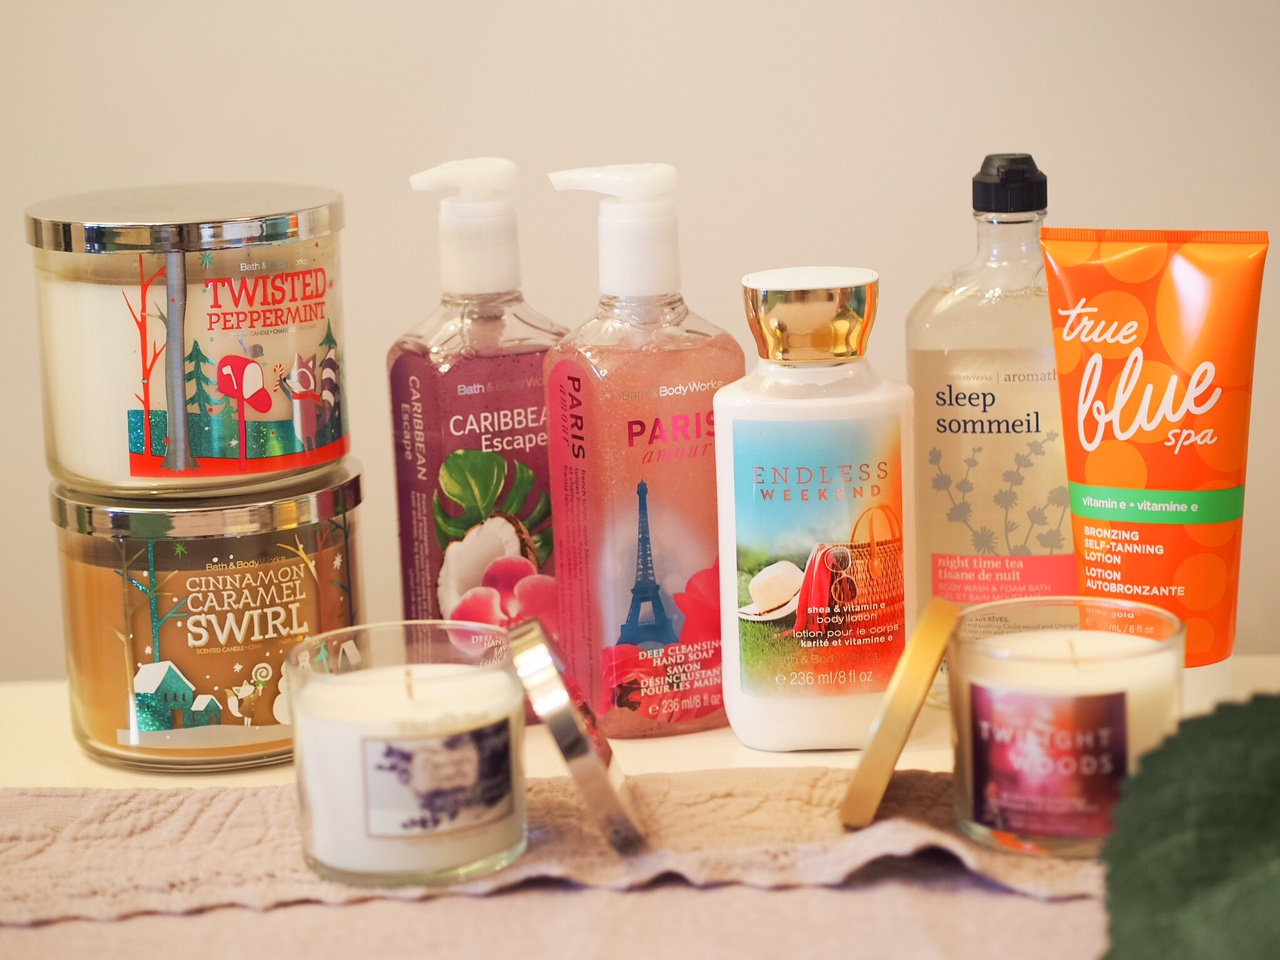 Bath and Body body works city centre beirut